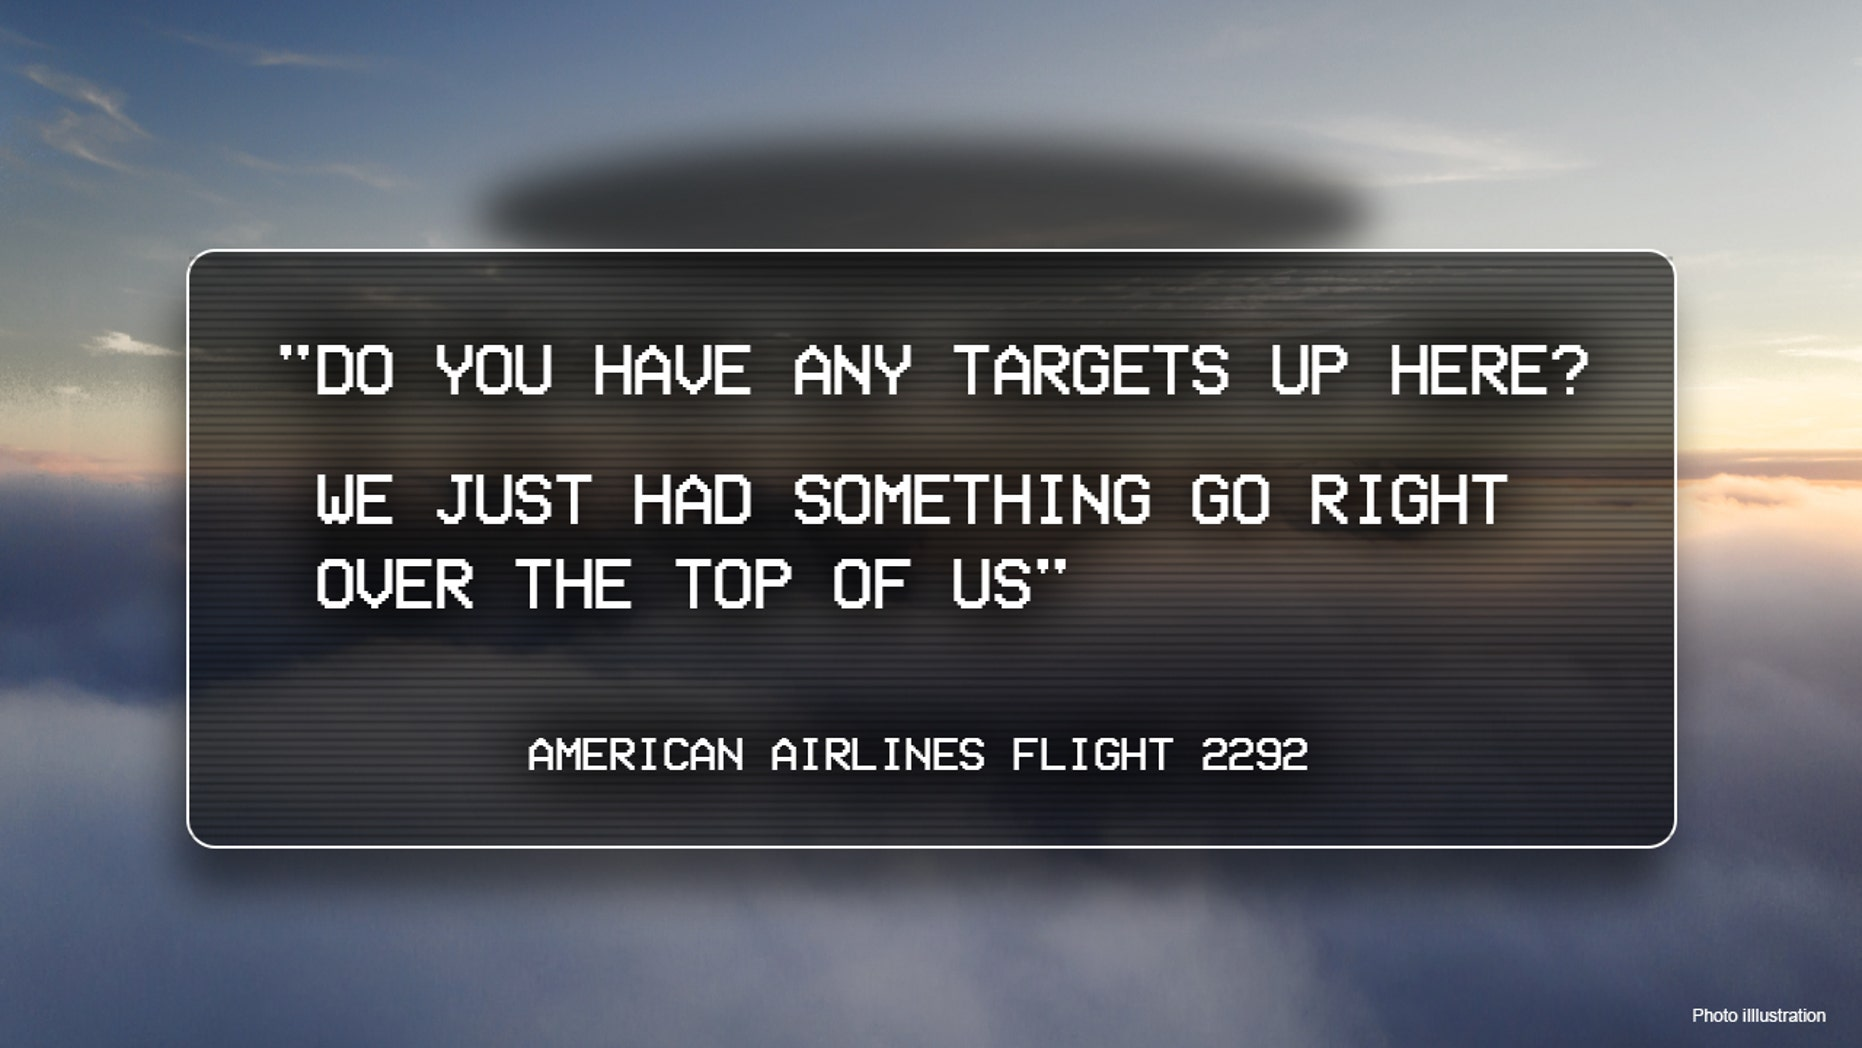 FBI 'Aware of' American Airlines Possible UFO Spotting, Stops Short of Confirming Investigation